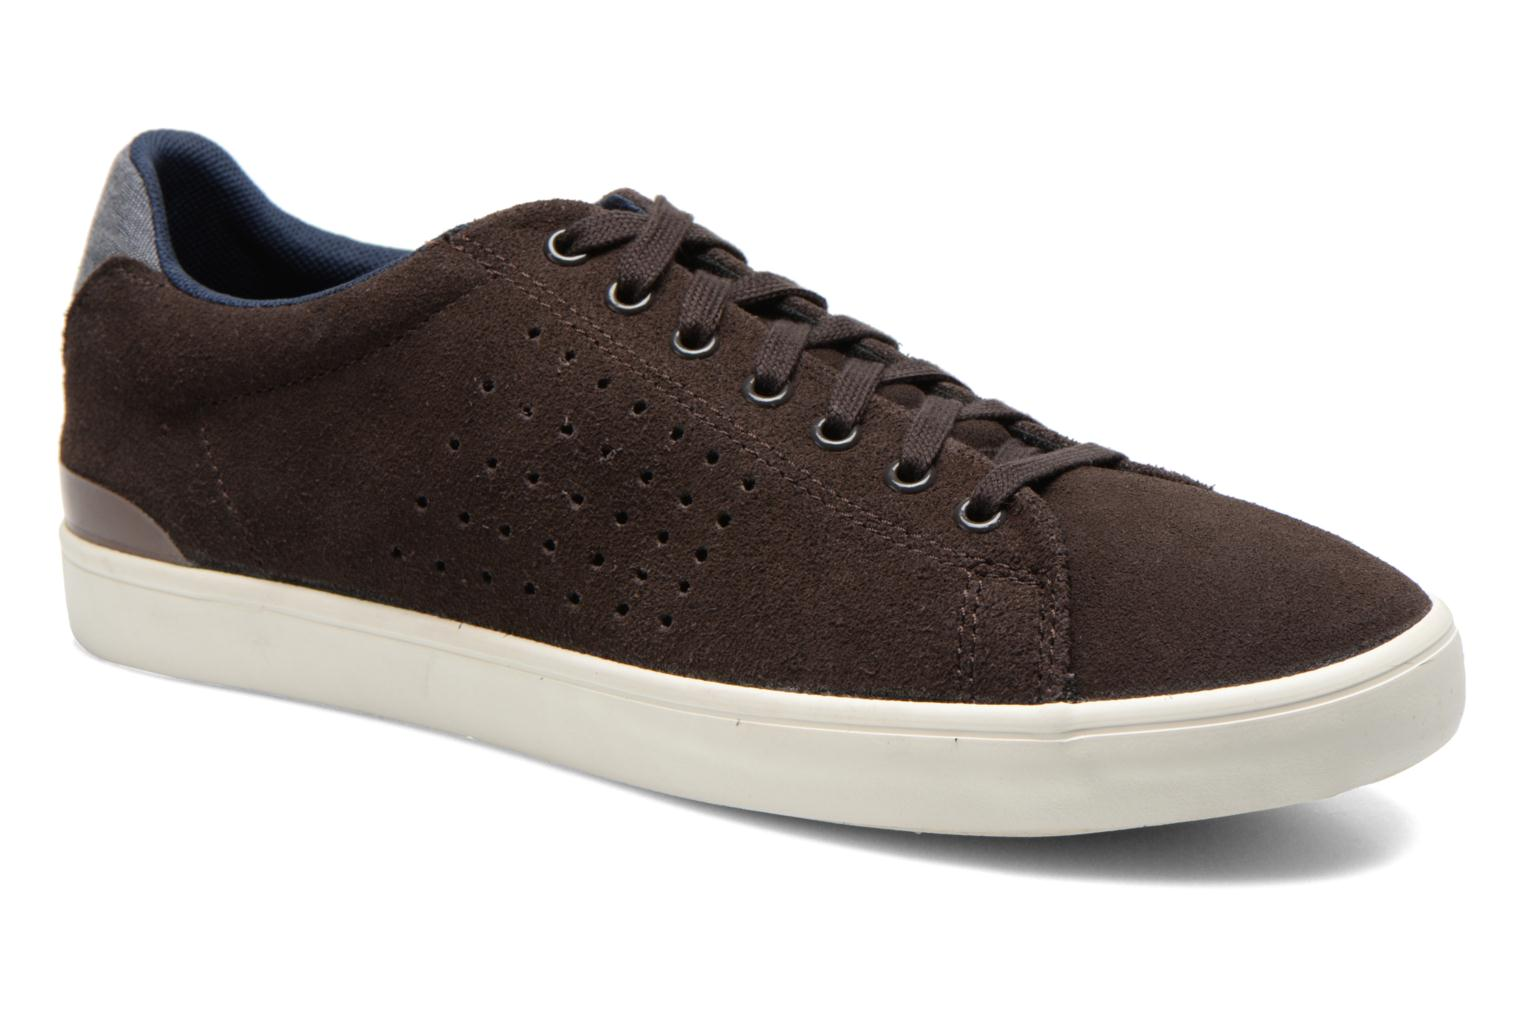 Sneakers Clubset Suede by Le Coq Sportif